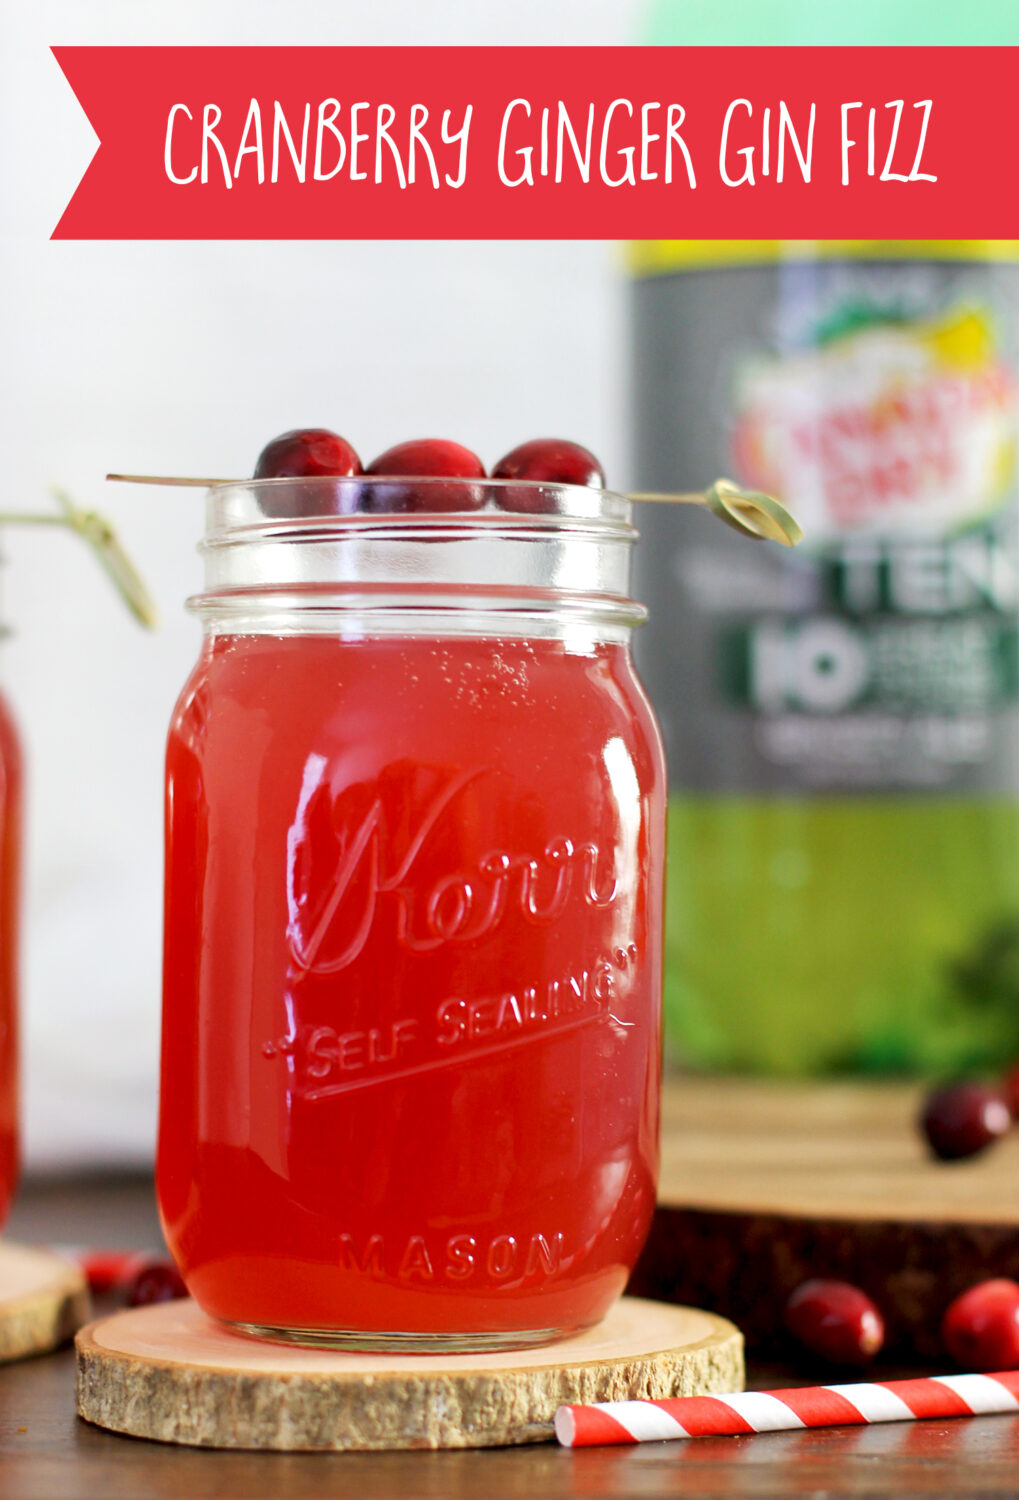 This cranberry ginger gin fizz is the perfect holiday cocktail! It's easy to make, and tastes DELISH!